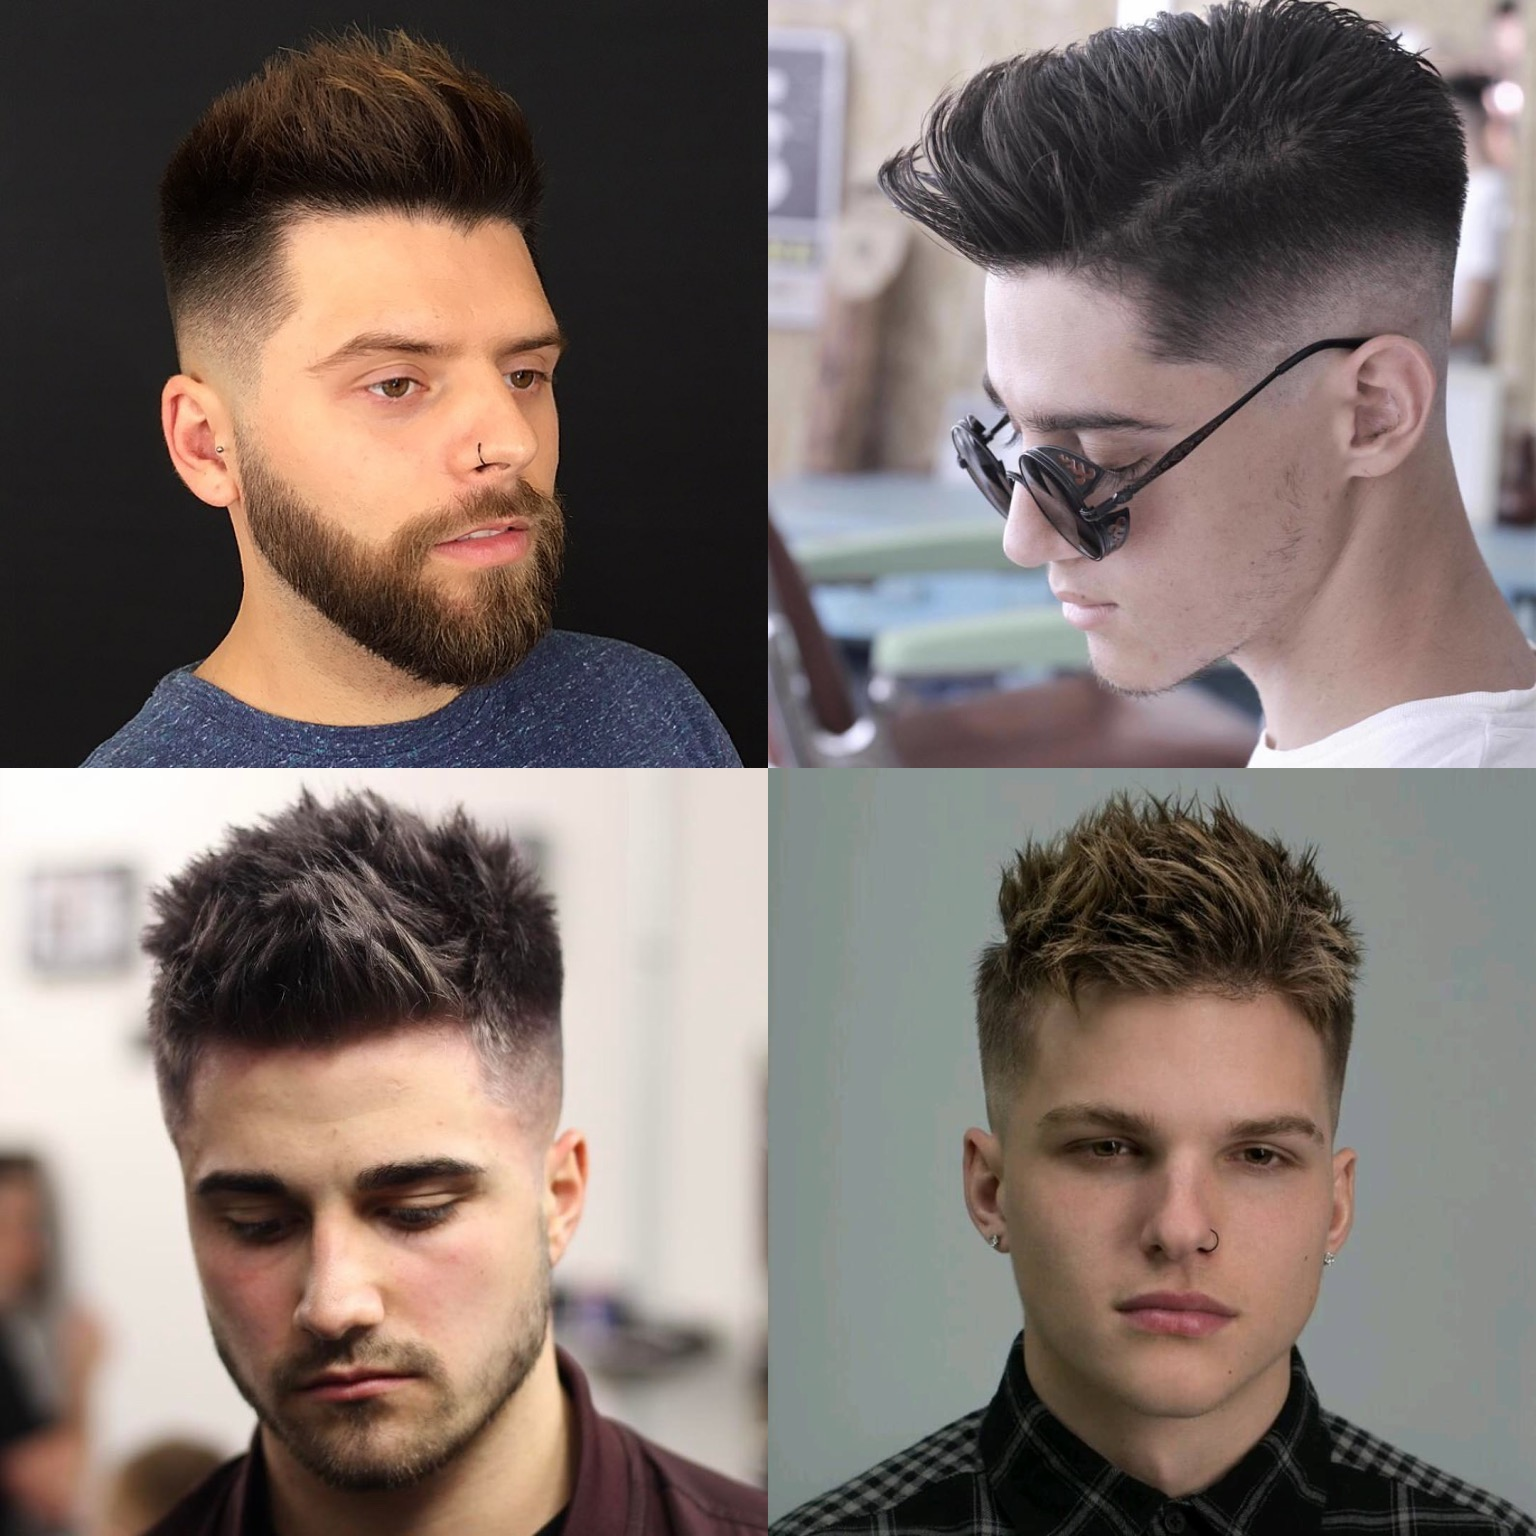 The men's undercut haircut with shaved back and sides can be aggressive looking but also chic. How To Style Spiky Hair Tips For Achieving Cool Textured Spikes Men S Hairstyles